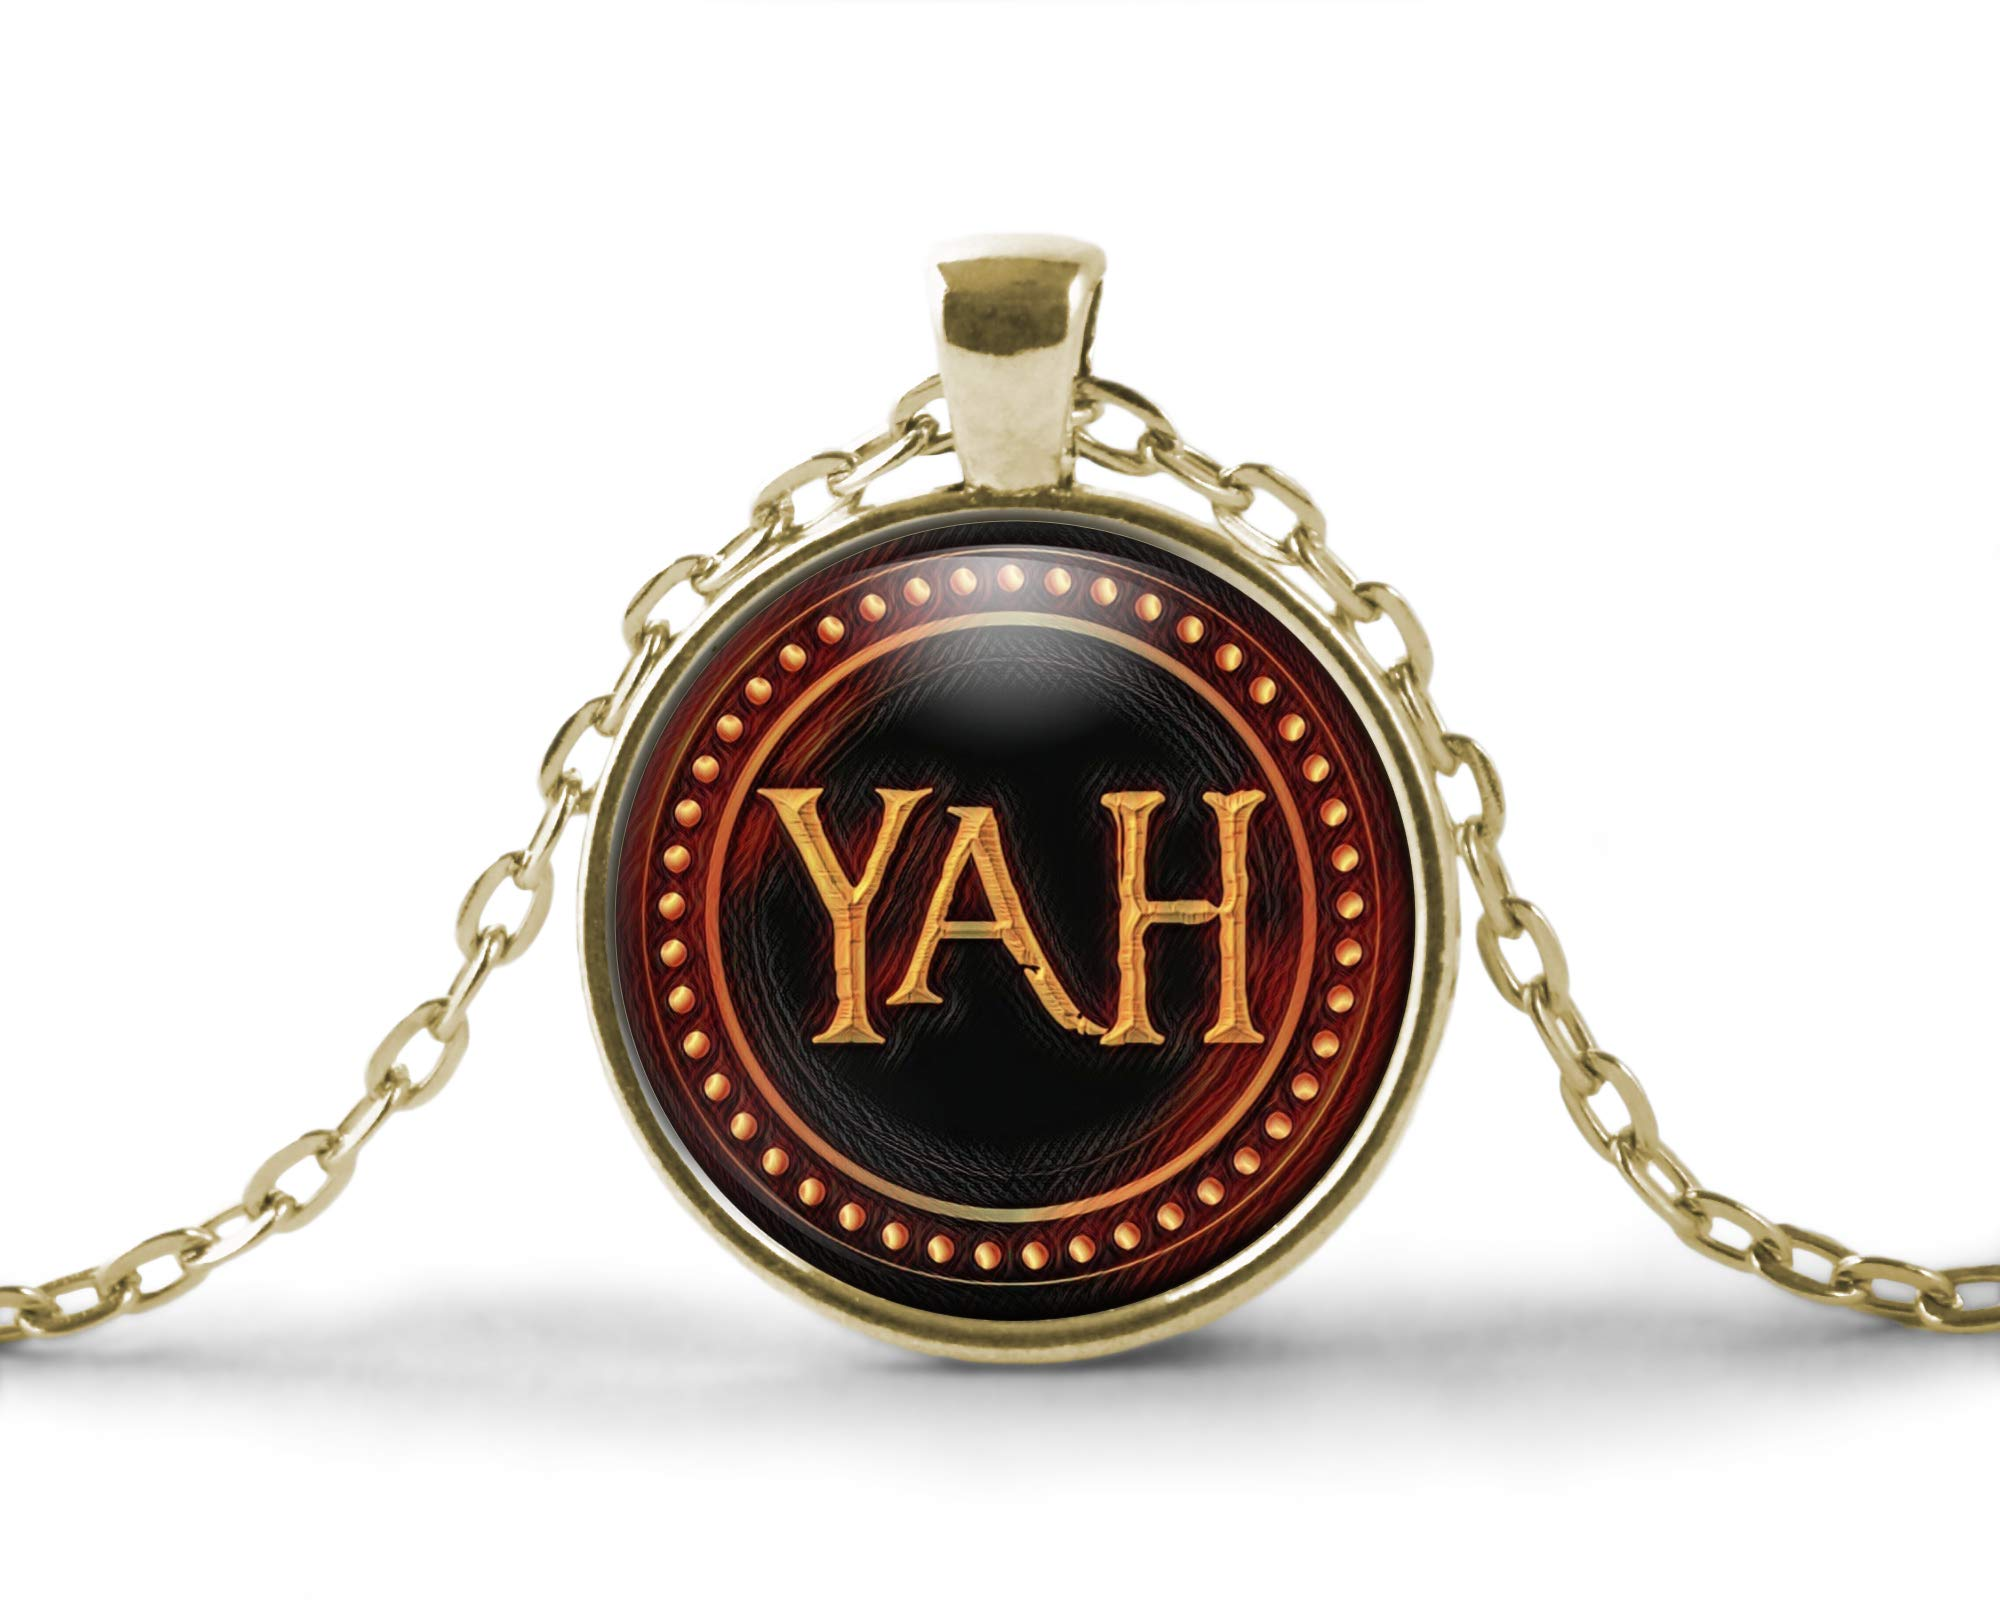 TAHLIA YAH Necklace - Hebrew Israelite Jewelry, Torah Messianic Necklaces for Men, Women or Child